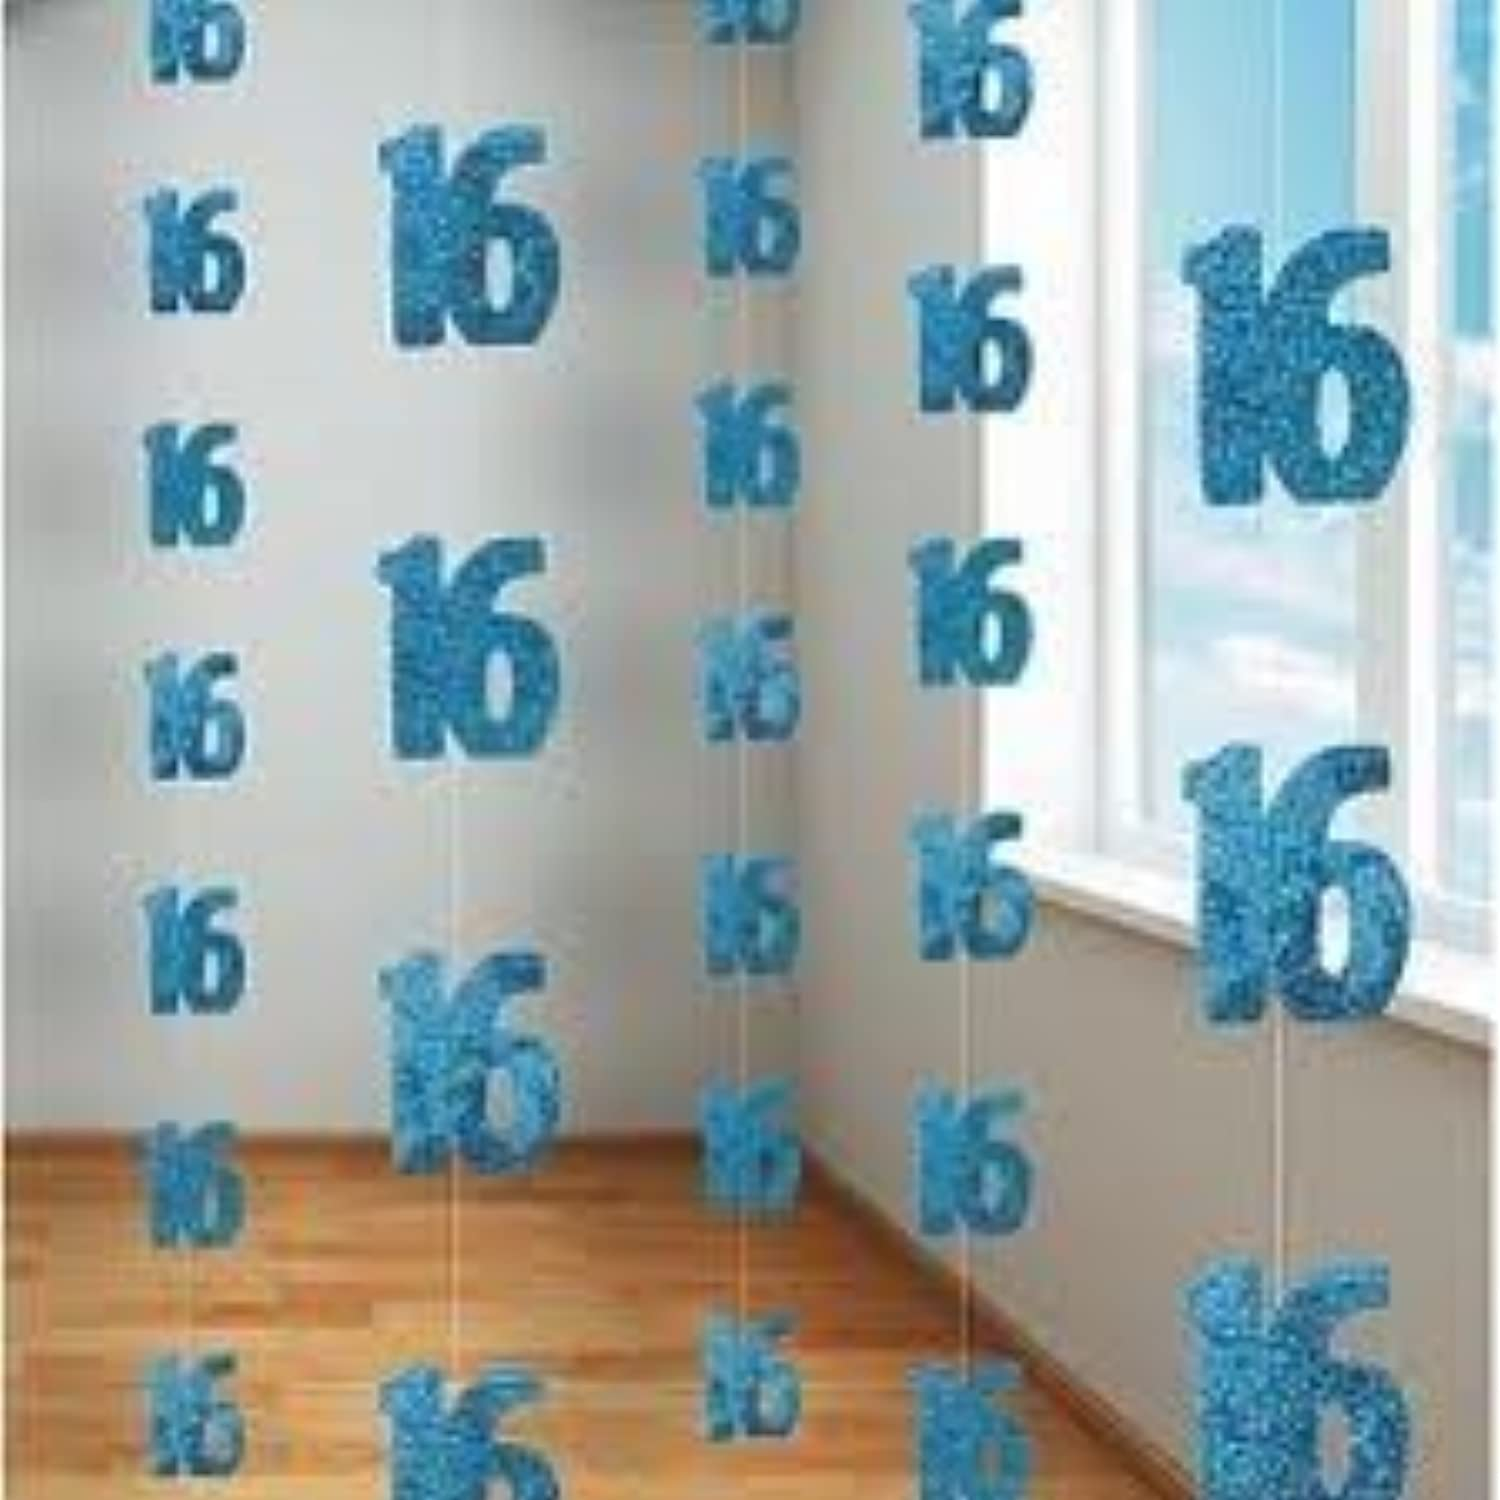 16TH BIRTHDAY HANGING DECORATION (NEW UNIQUE bluee hol) by Every-occasion-party-supplies